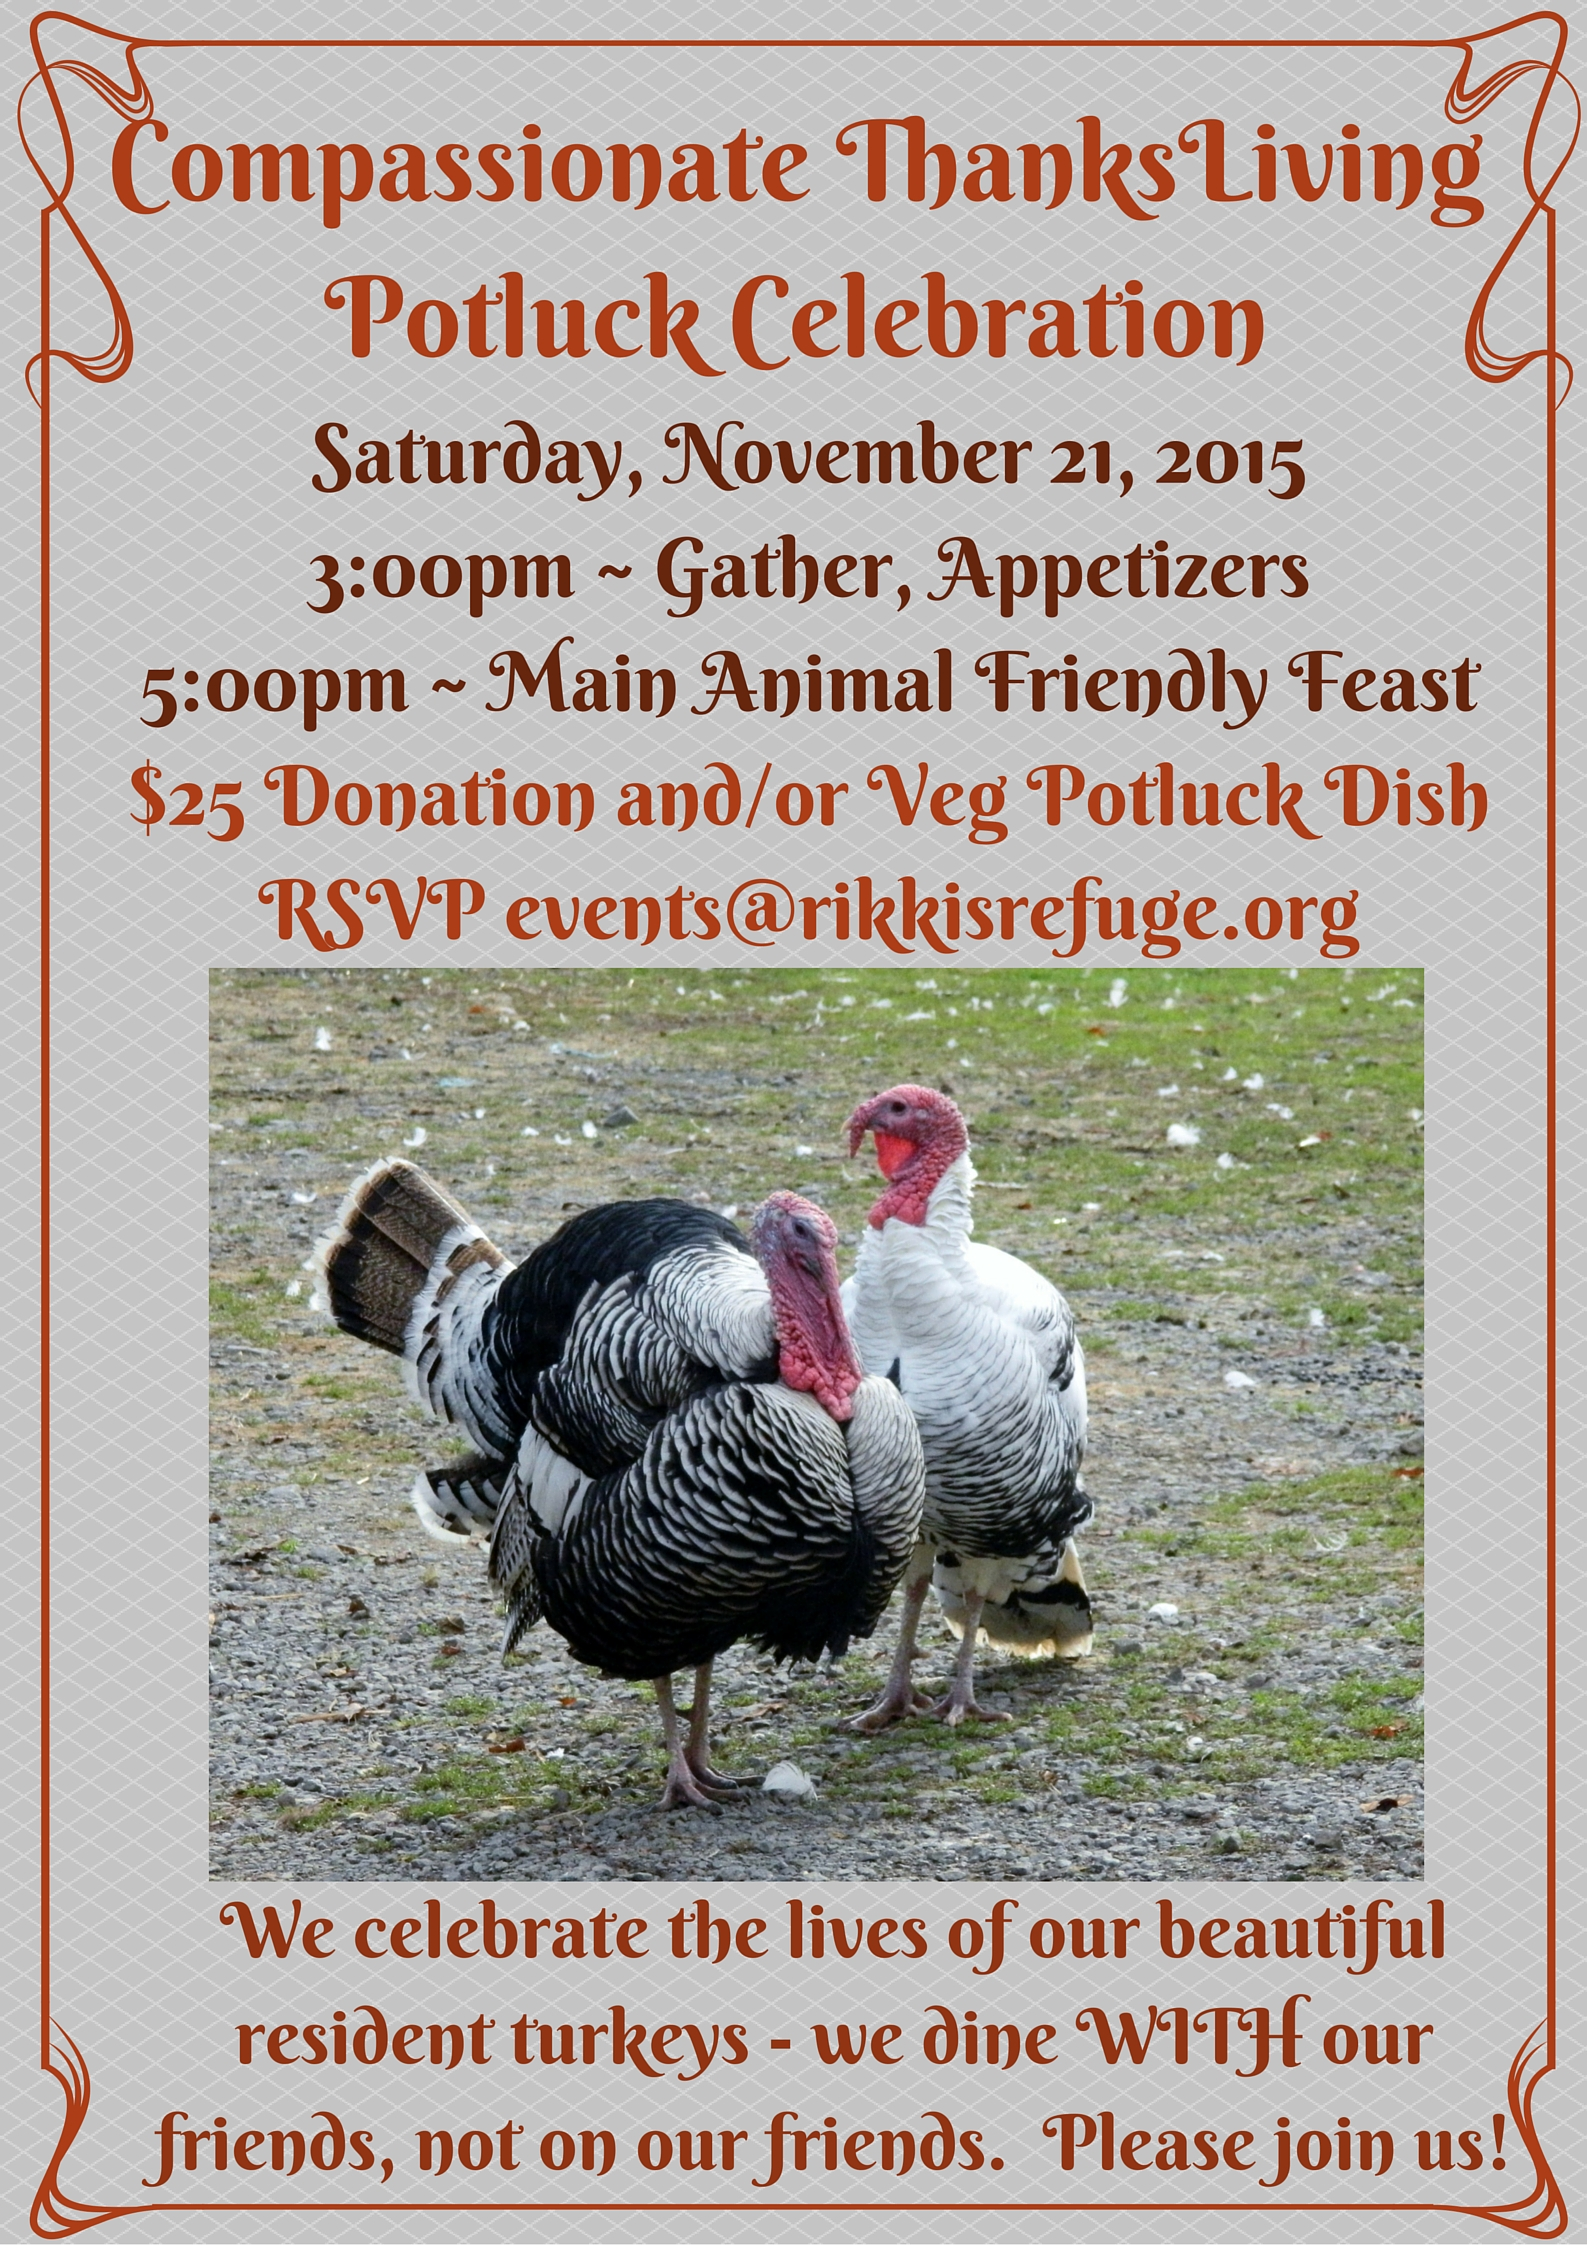 Compassionate ThanksLiving Potluck Celebration 2015